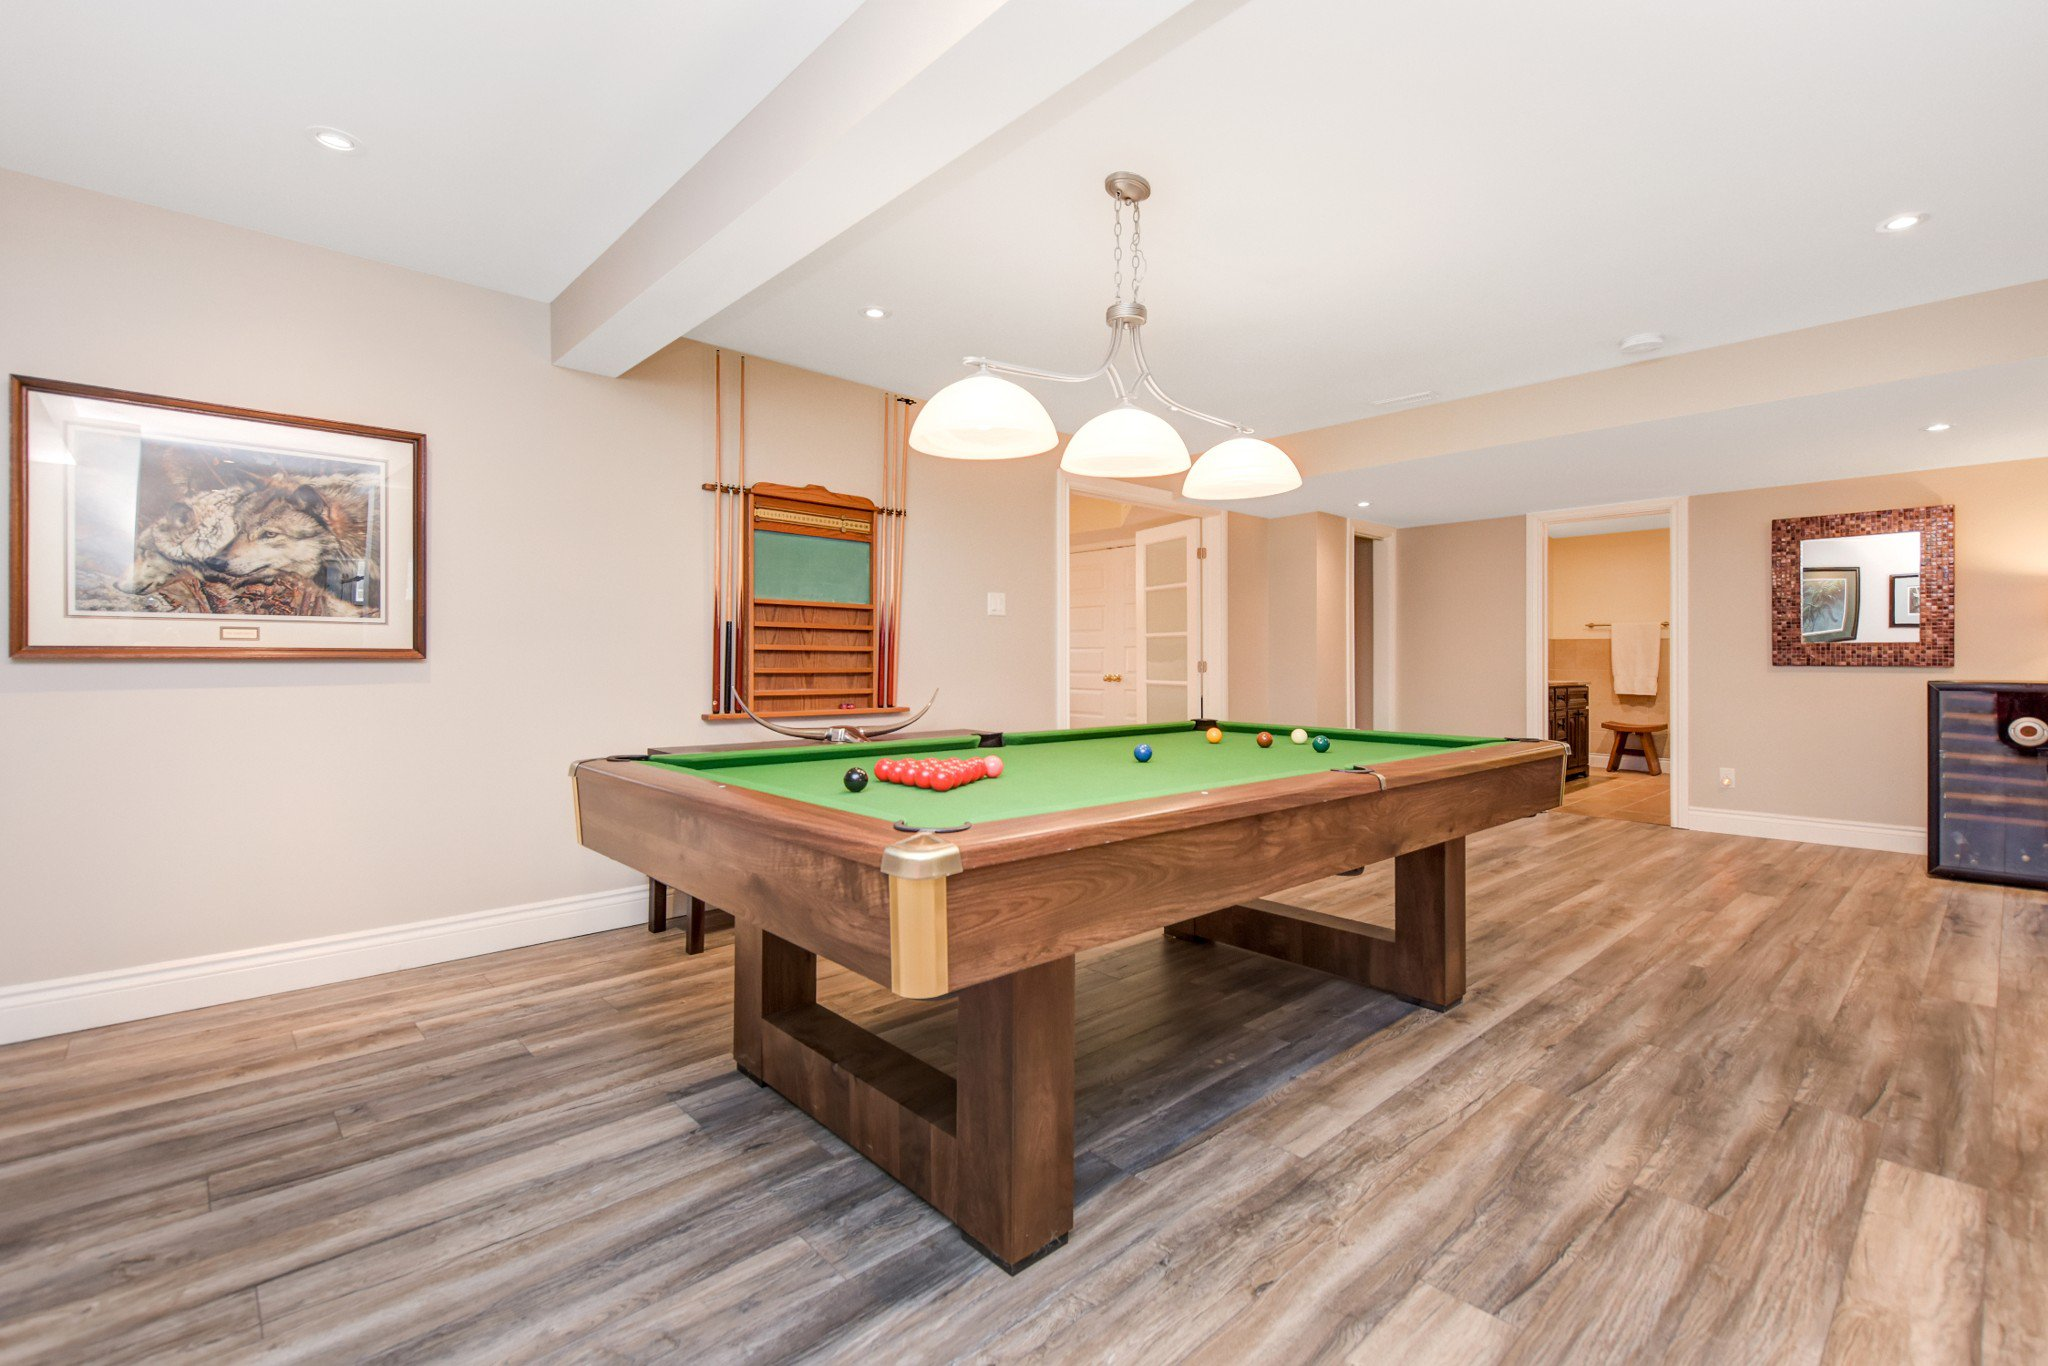 Photo 49: Photos: 1490 REINDEER WAY.: Greely House for sale (Ottawa)  : MLS®# 1109530